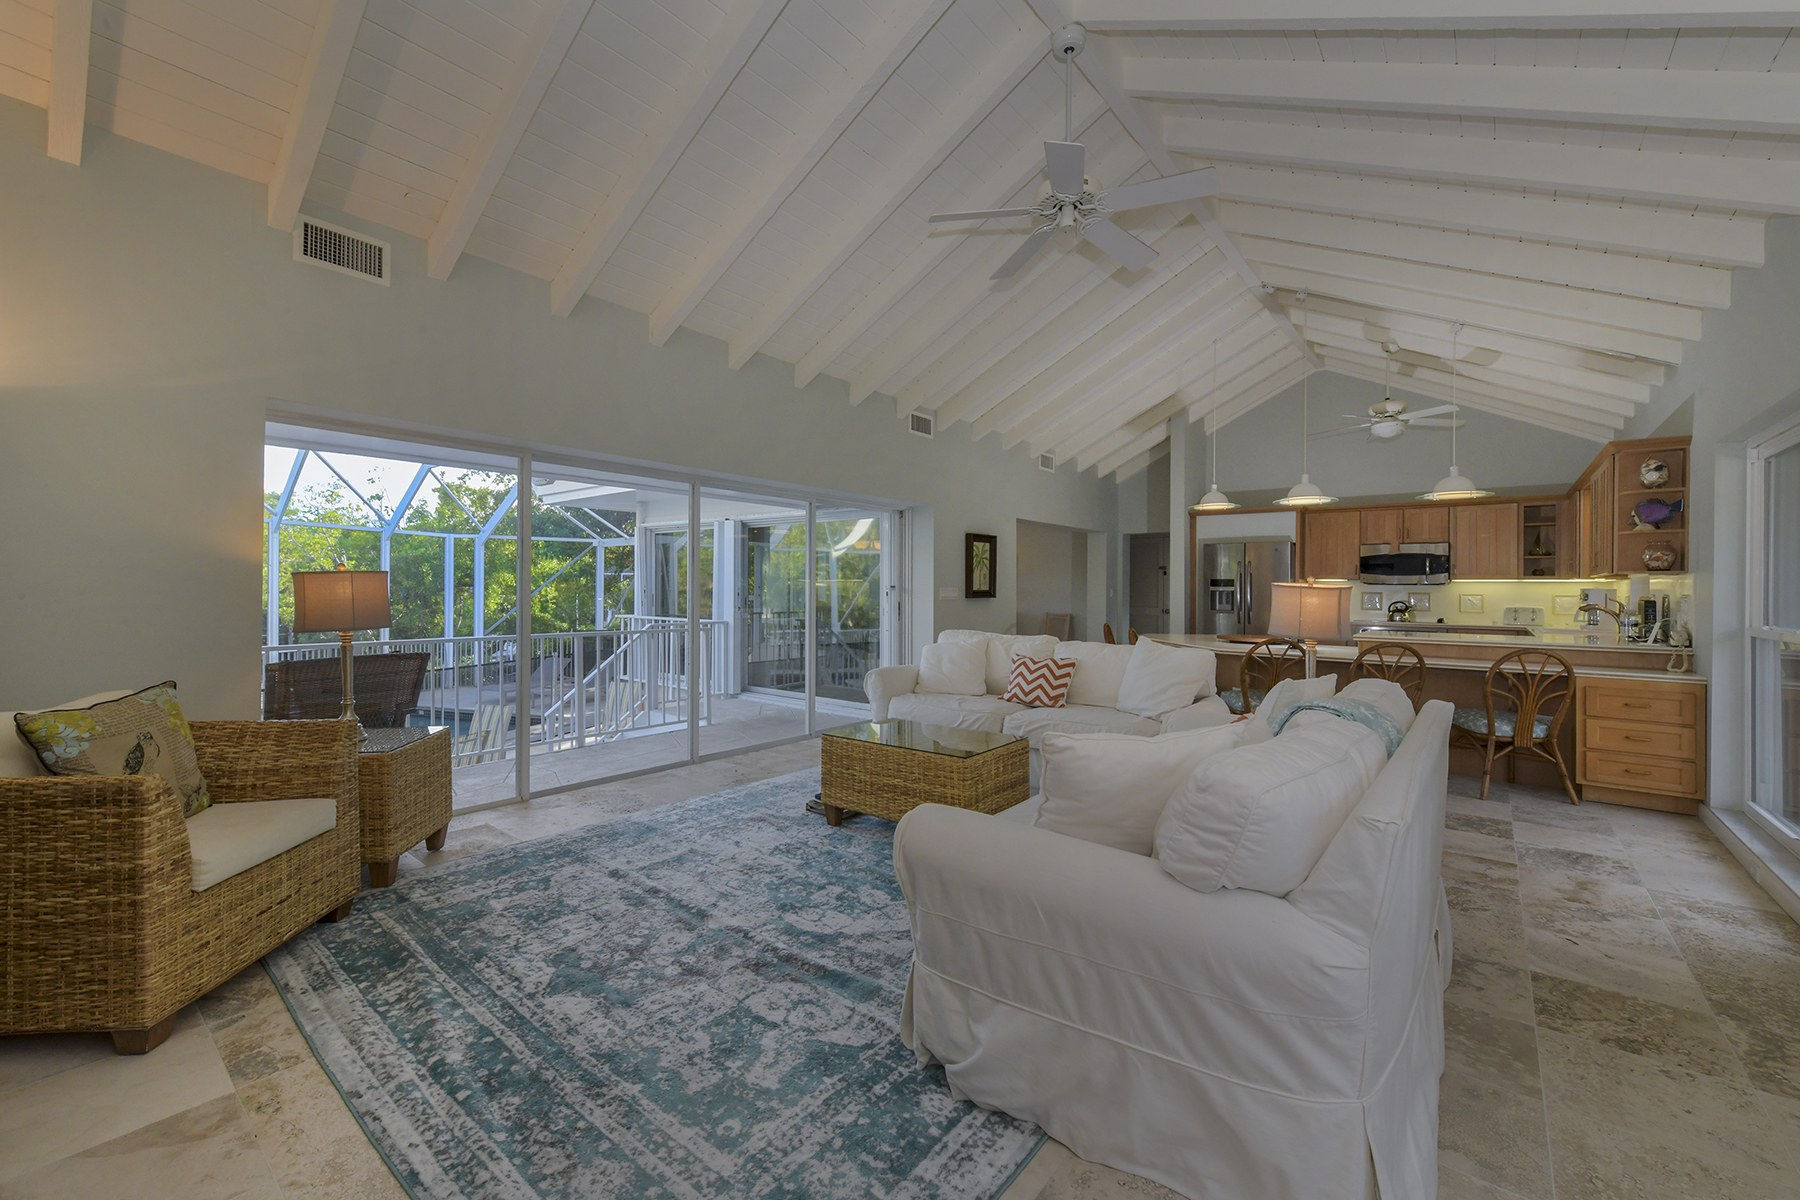 Property for Sale at 19 Harbor Island Drive, Key Largo, FL 19 Harbor Island Drive Key Largo, Florida 33037 United States